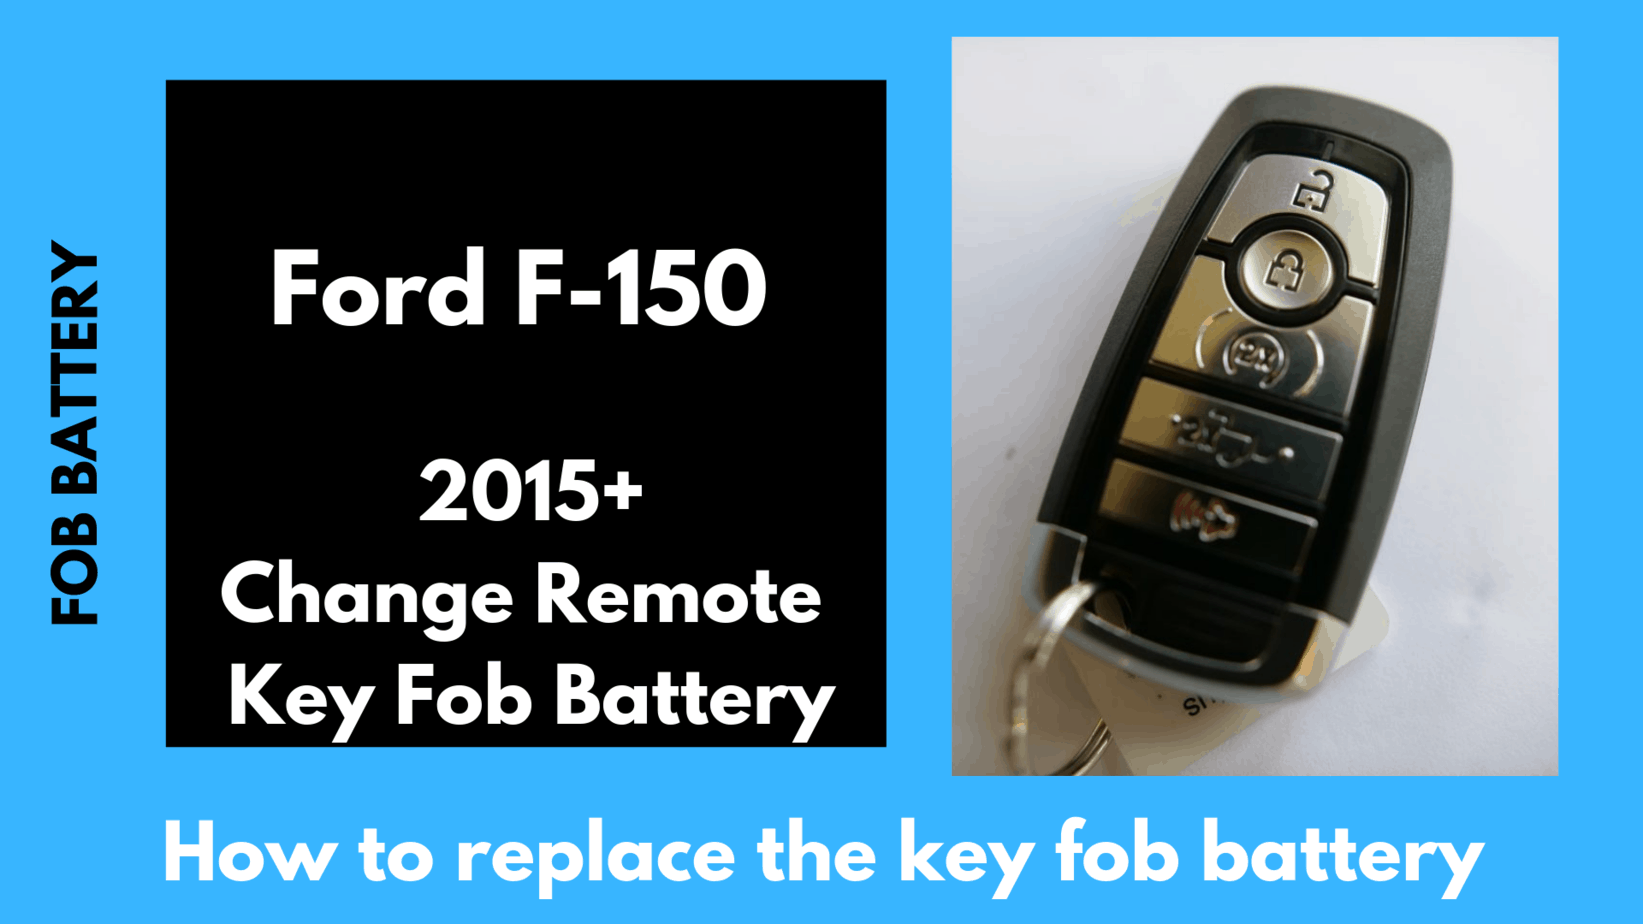 Ford F 150 Key Fob Battery Replacement Easy How To Guide